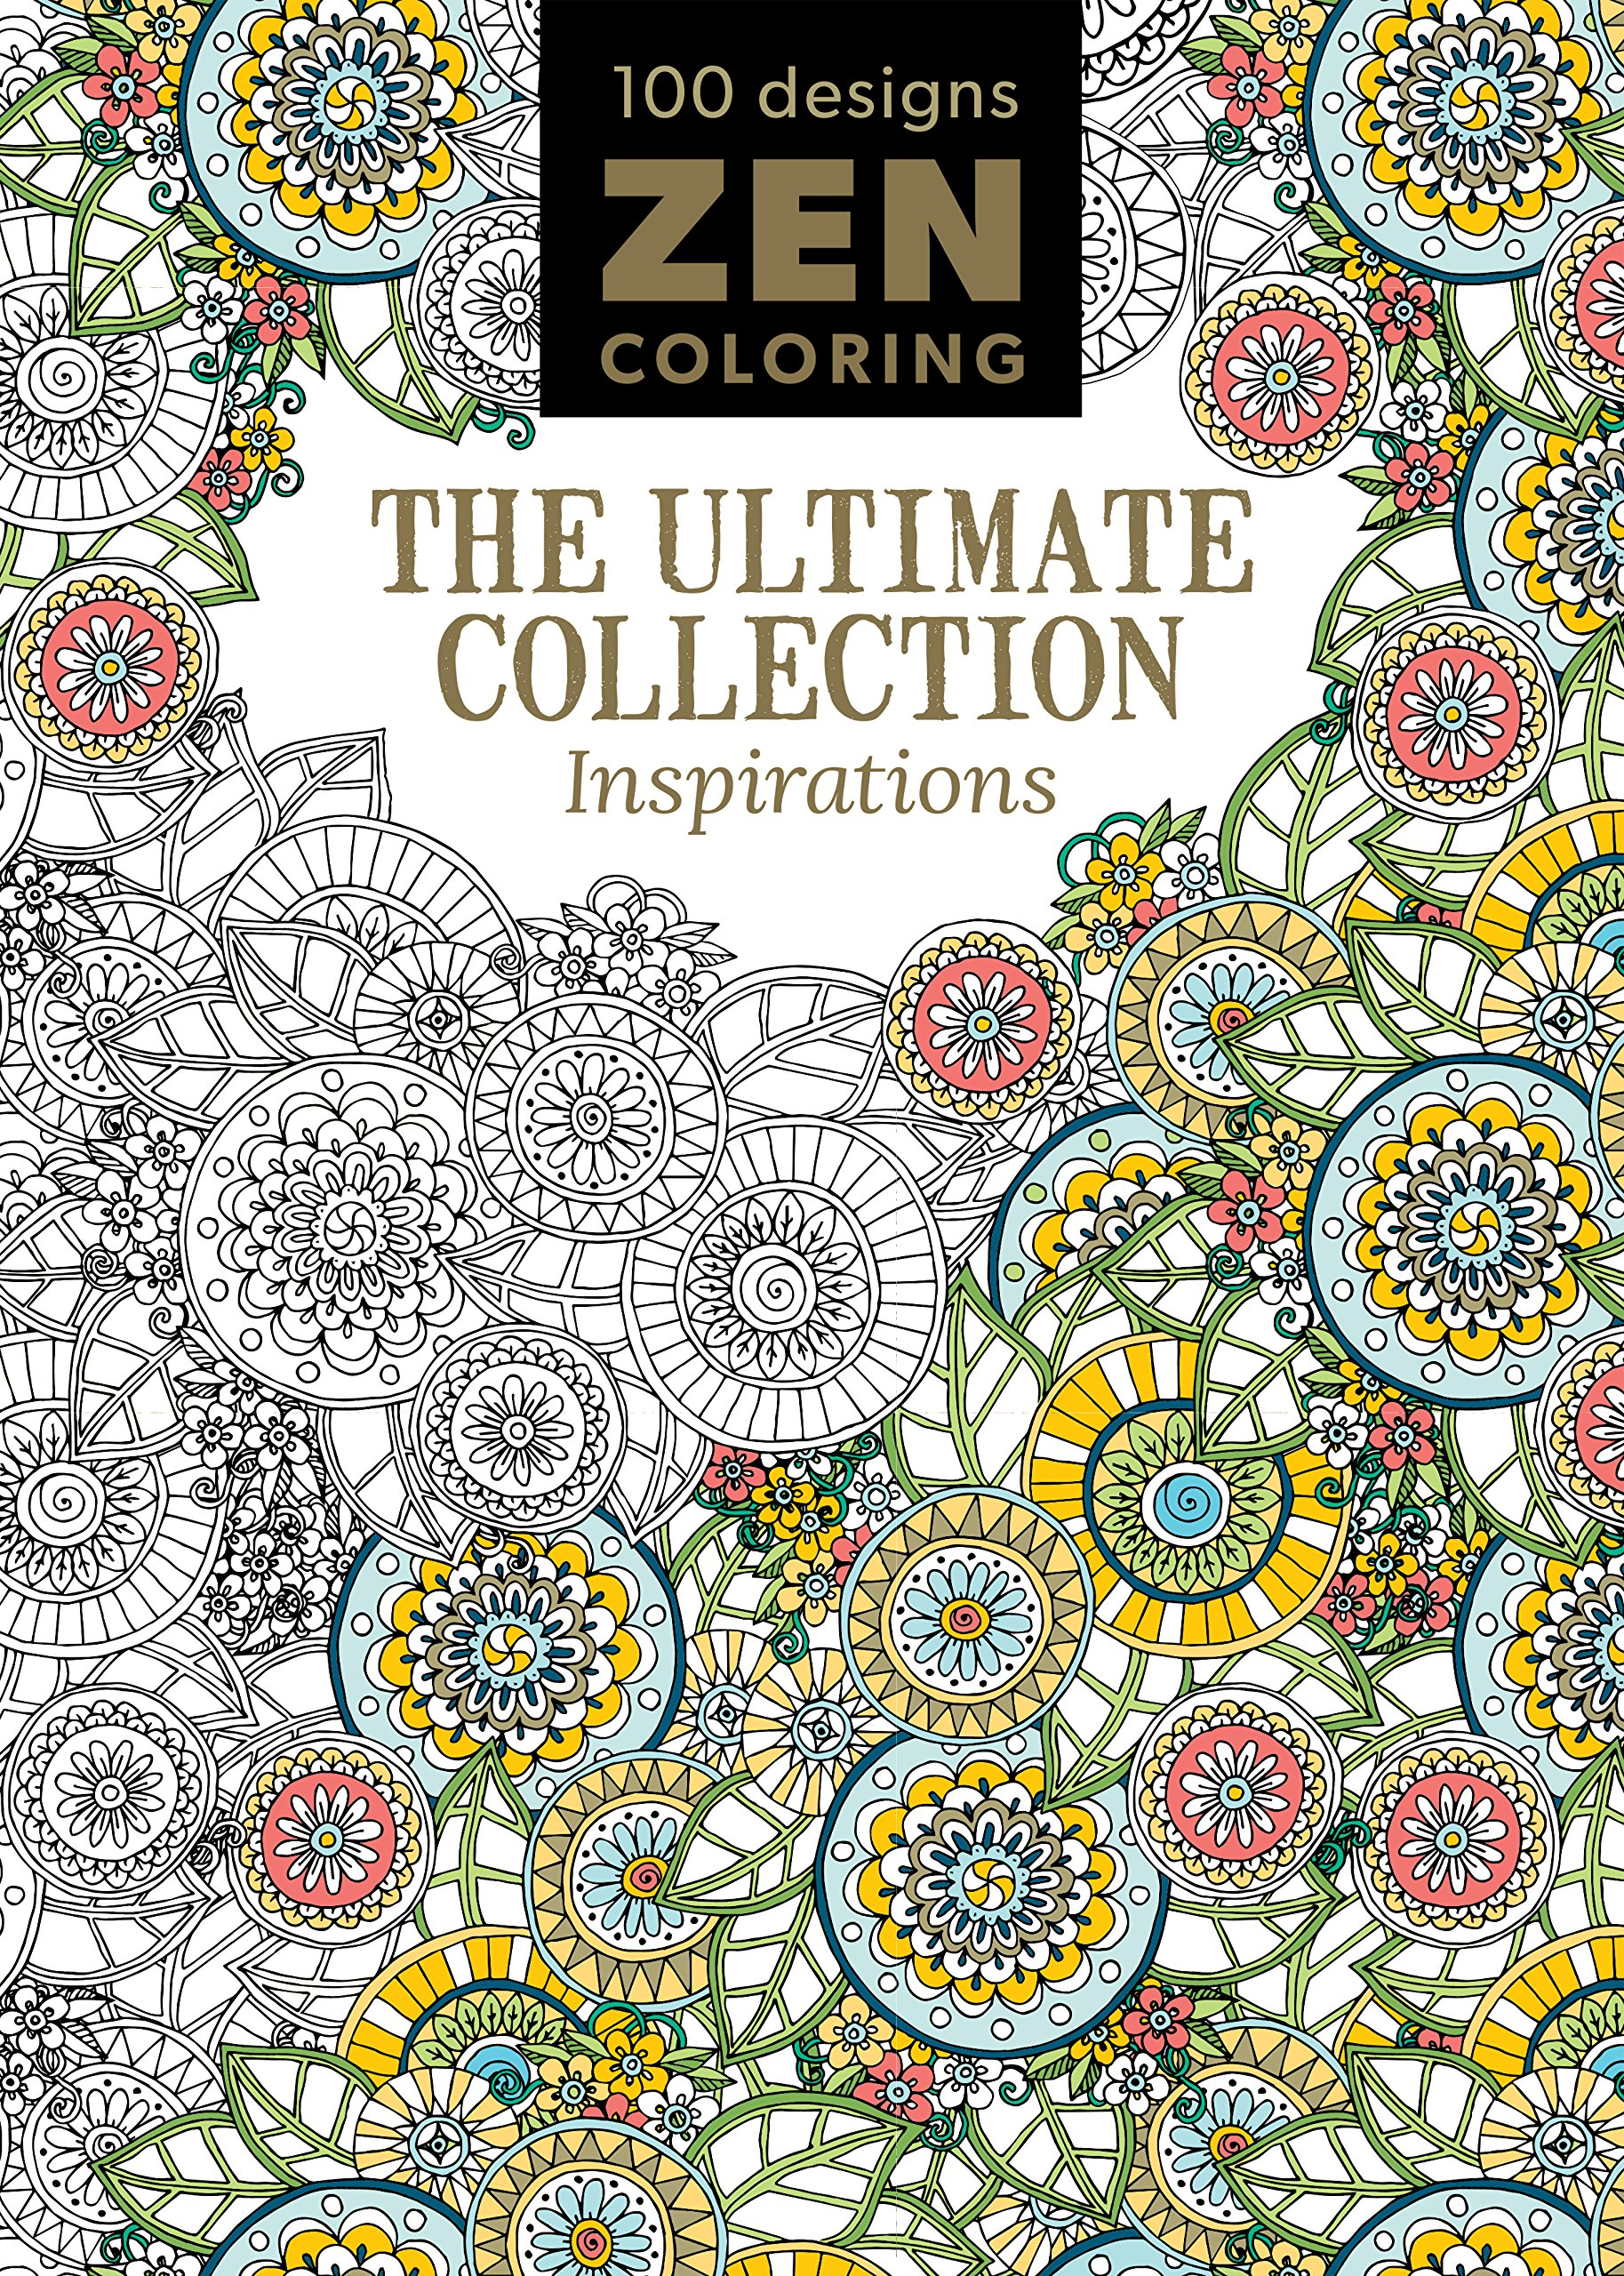 Download Zen Coloring - The Ultimate Collection Inspirations ebook